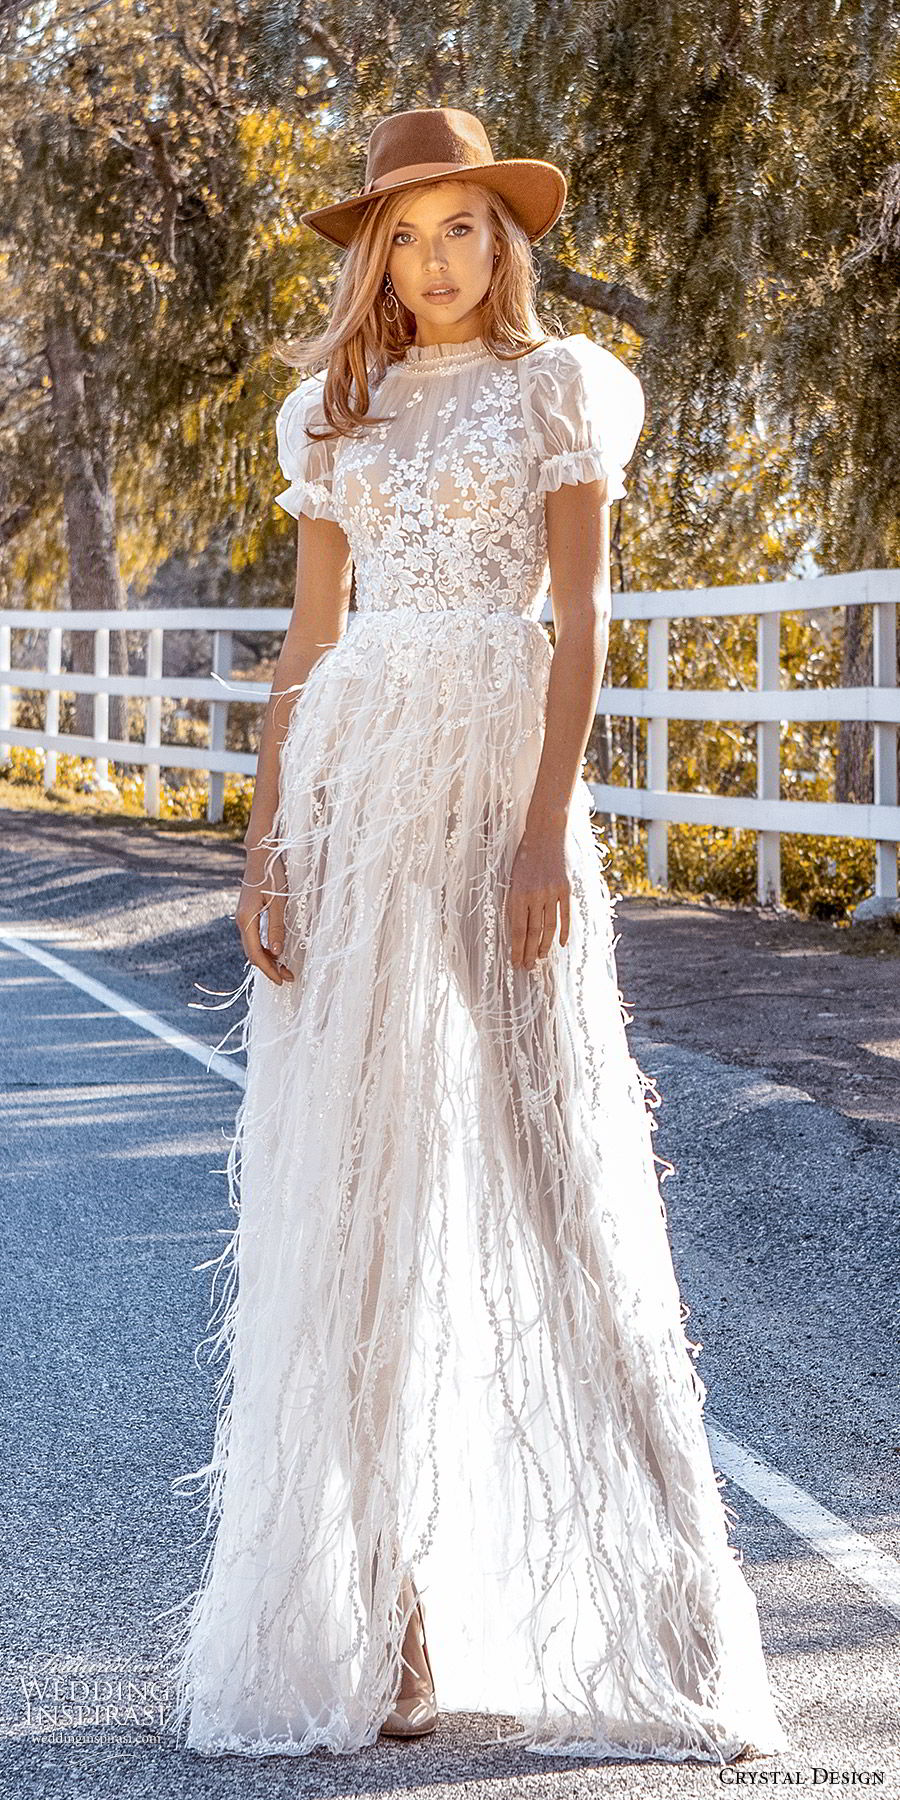 crystal design 2020 couture bridal short puff sleeves high neckline fully embellished lace bodice a line wedding dress feather sheer skirt (4) romantic boho chic mv